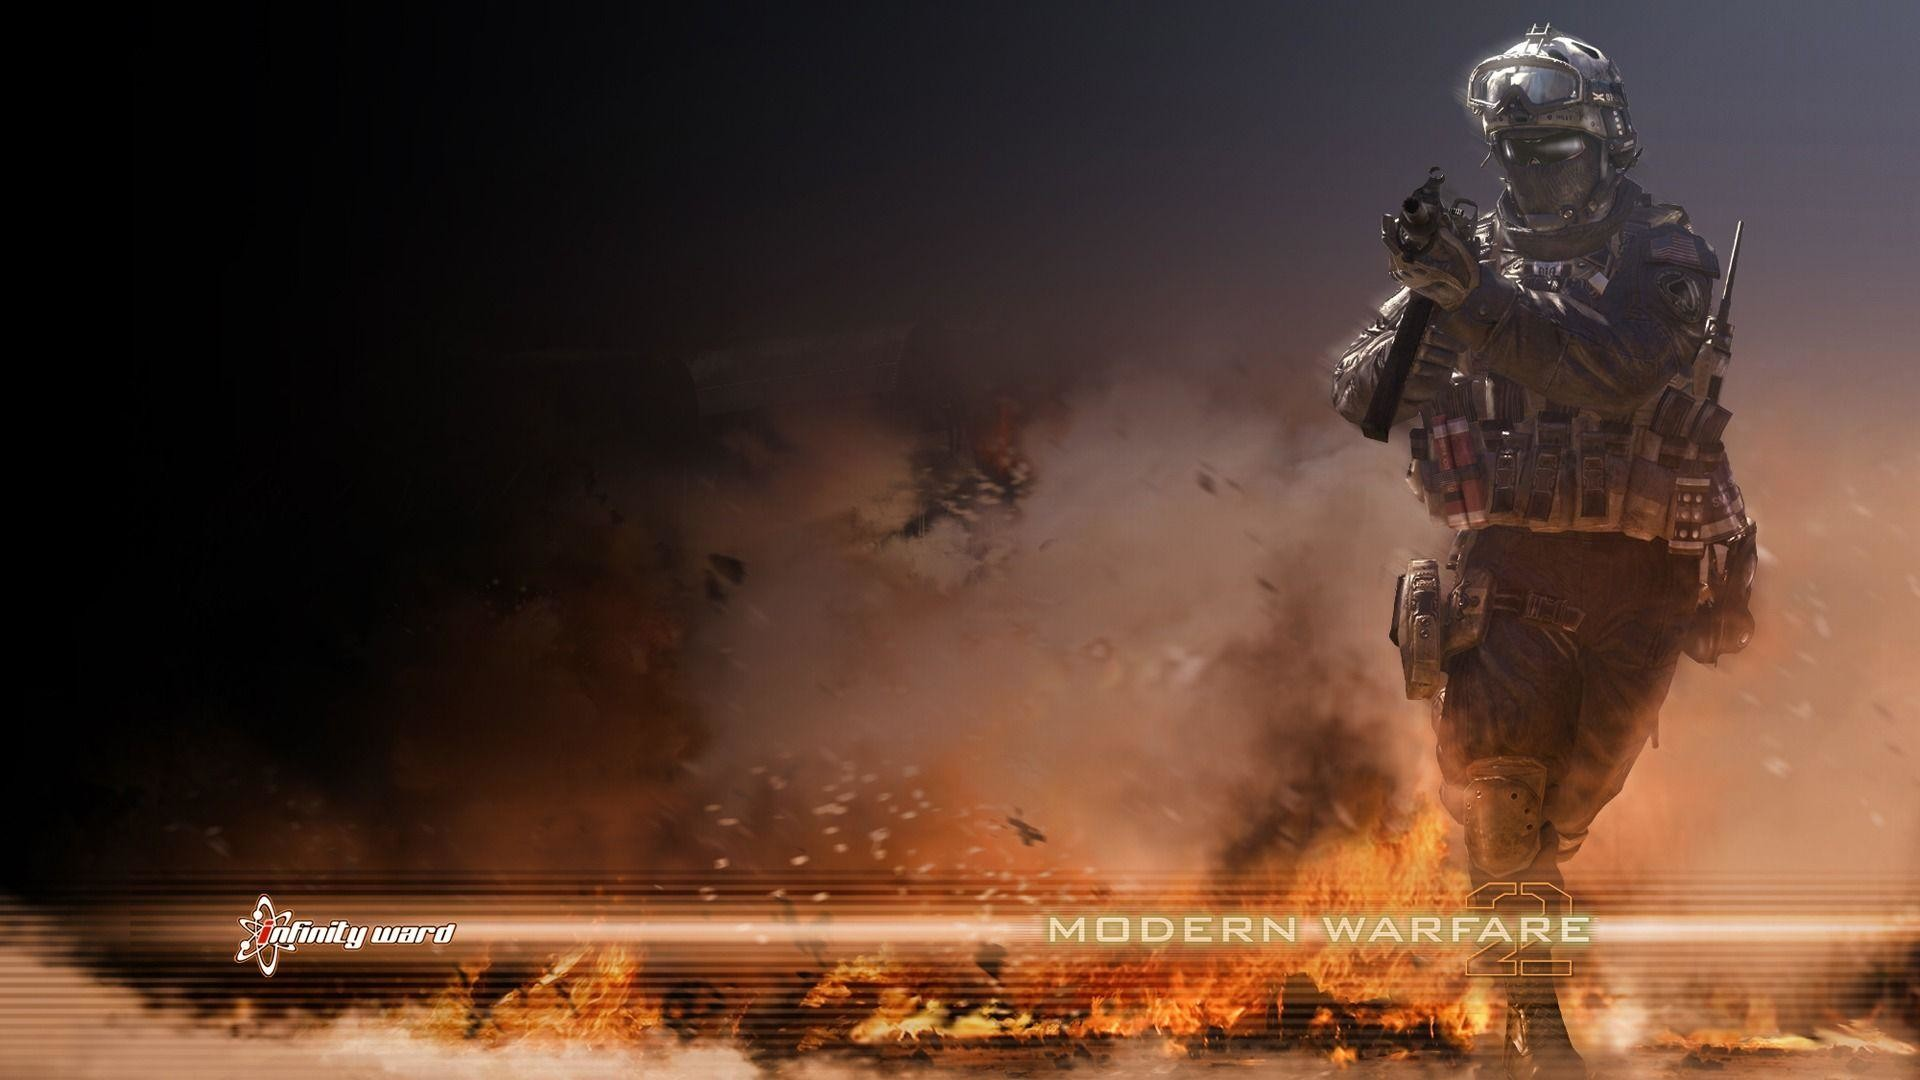 Modern Warfare 2 Wallpaper 1080p 75 Images